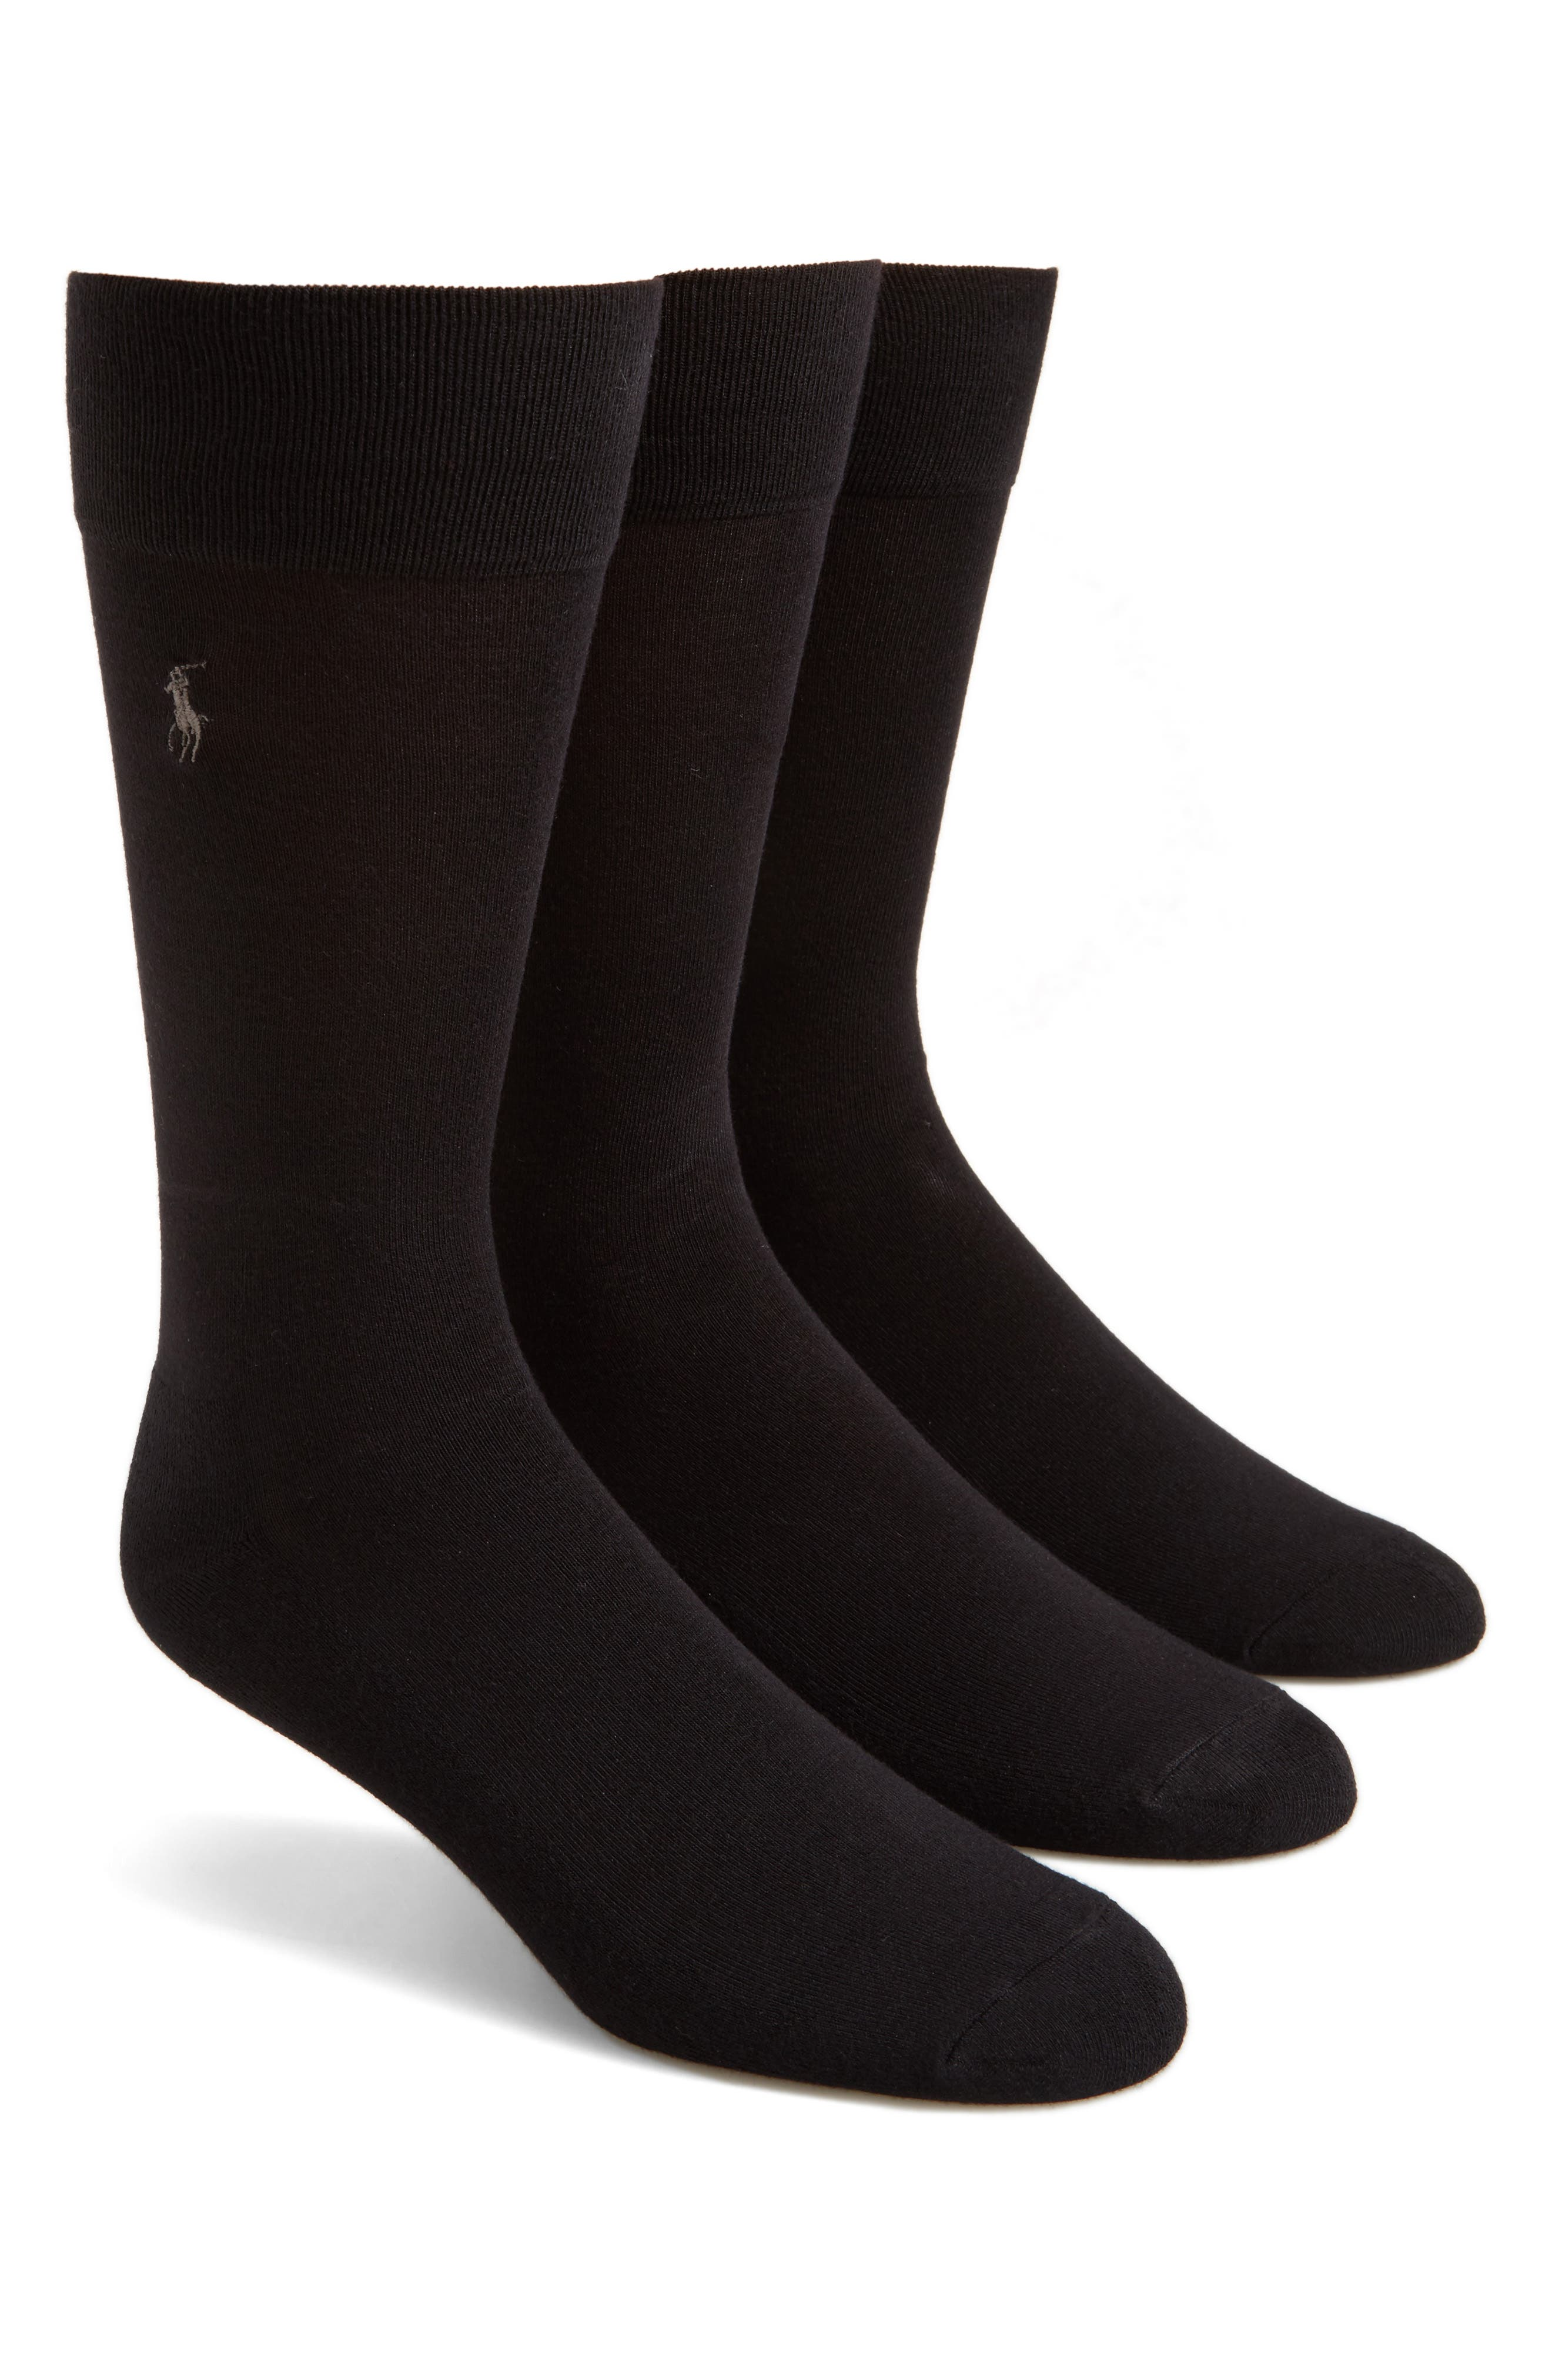 Alternate Image 1 Selected - Polo Ralph Lauren 3-Pack Socks